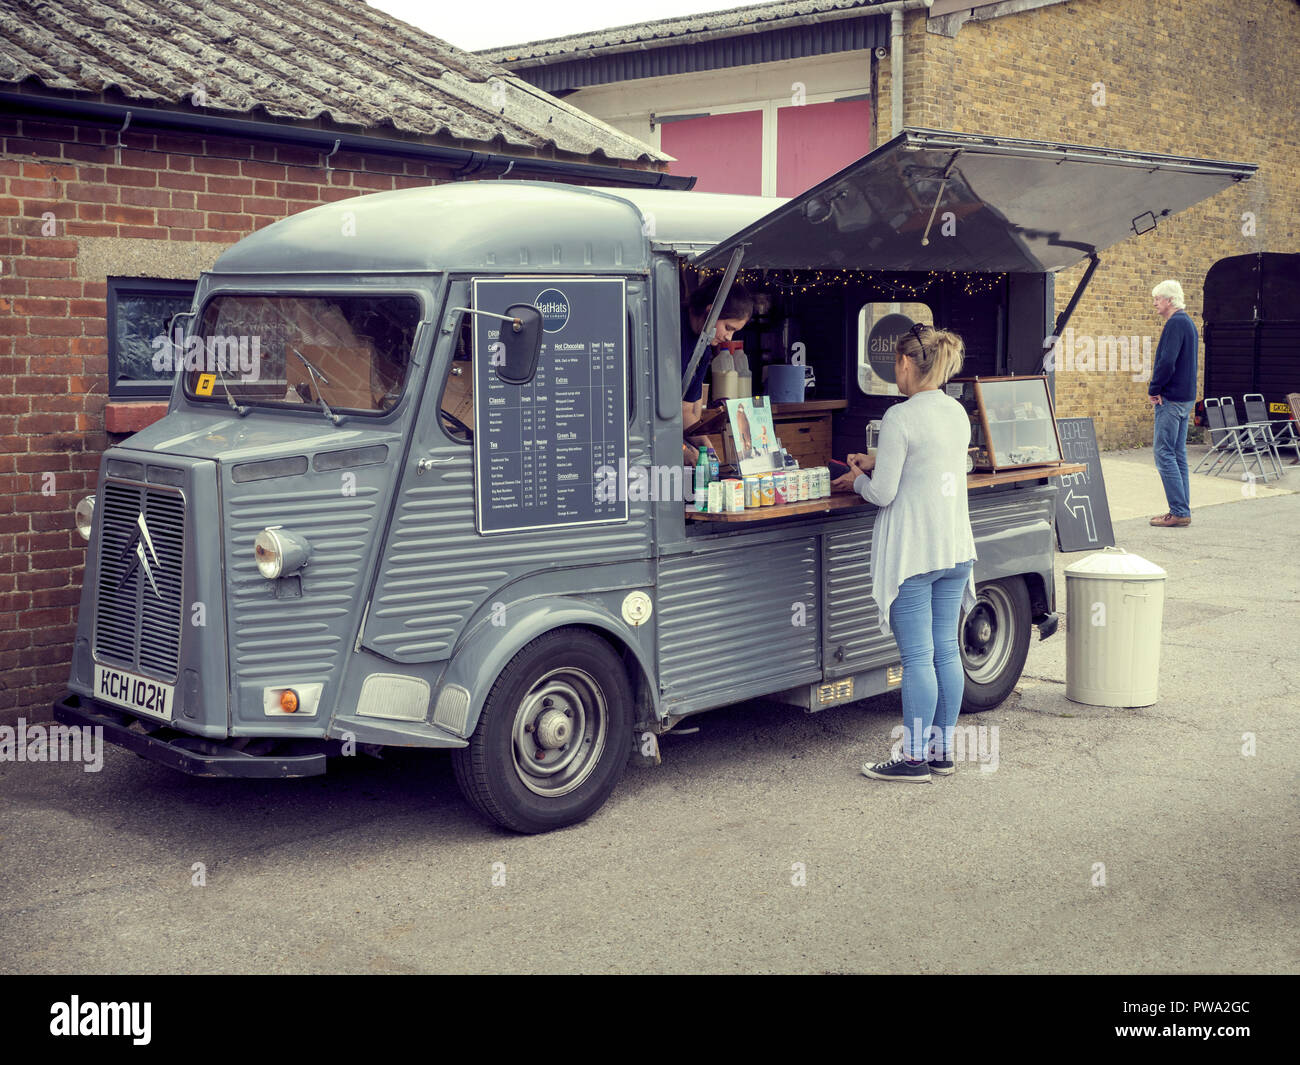 Citroen H Van Food Truck Stock Photo Alamy